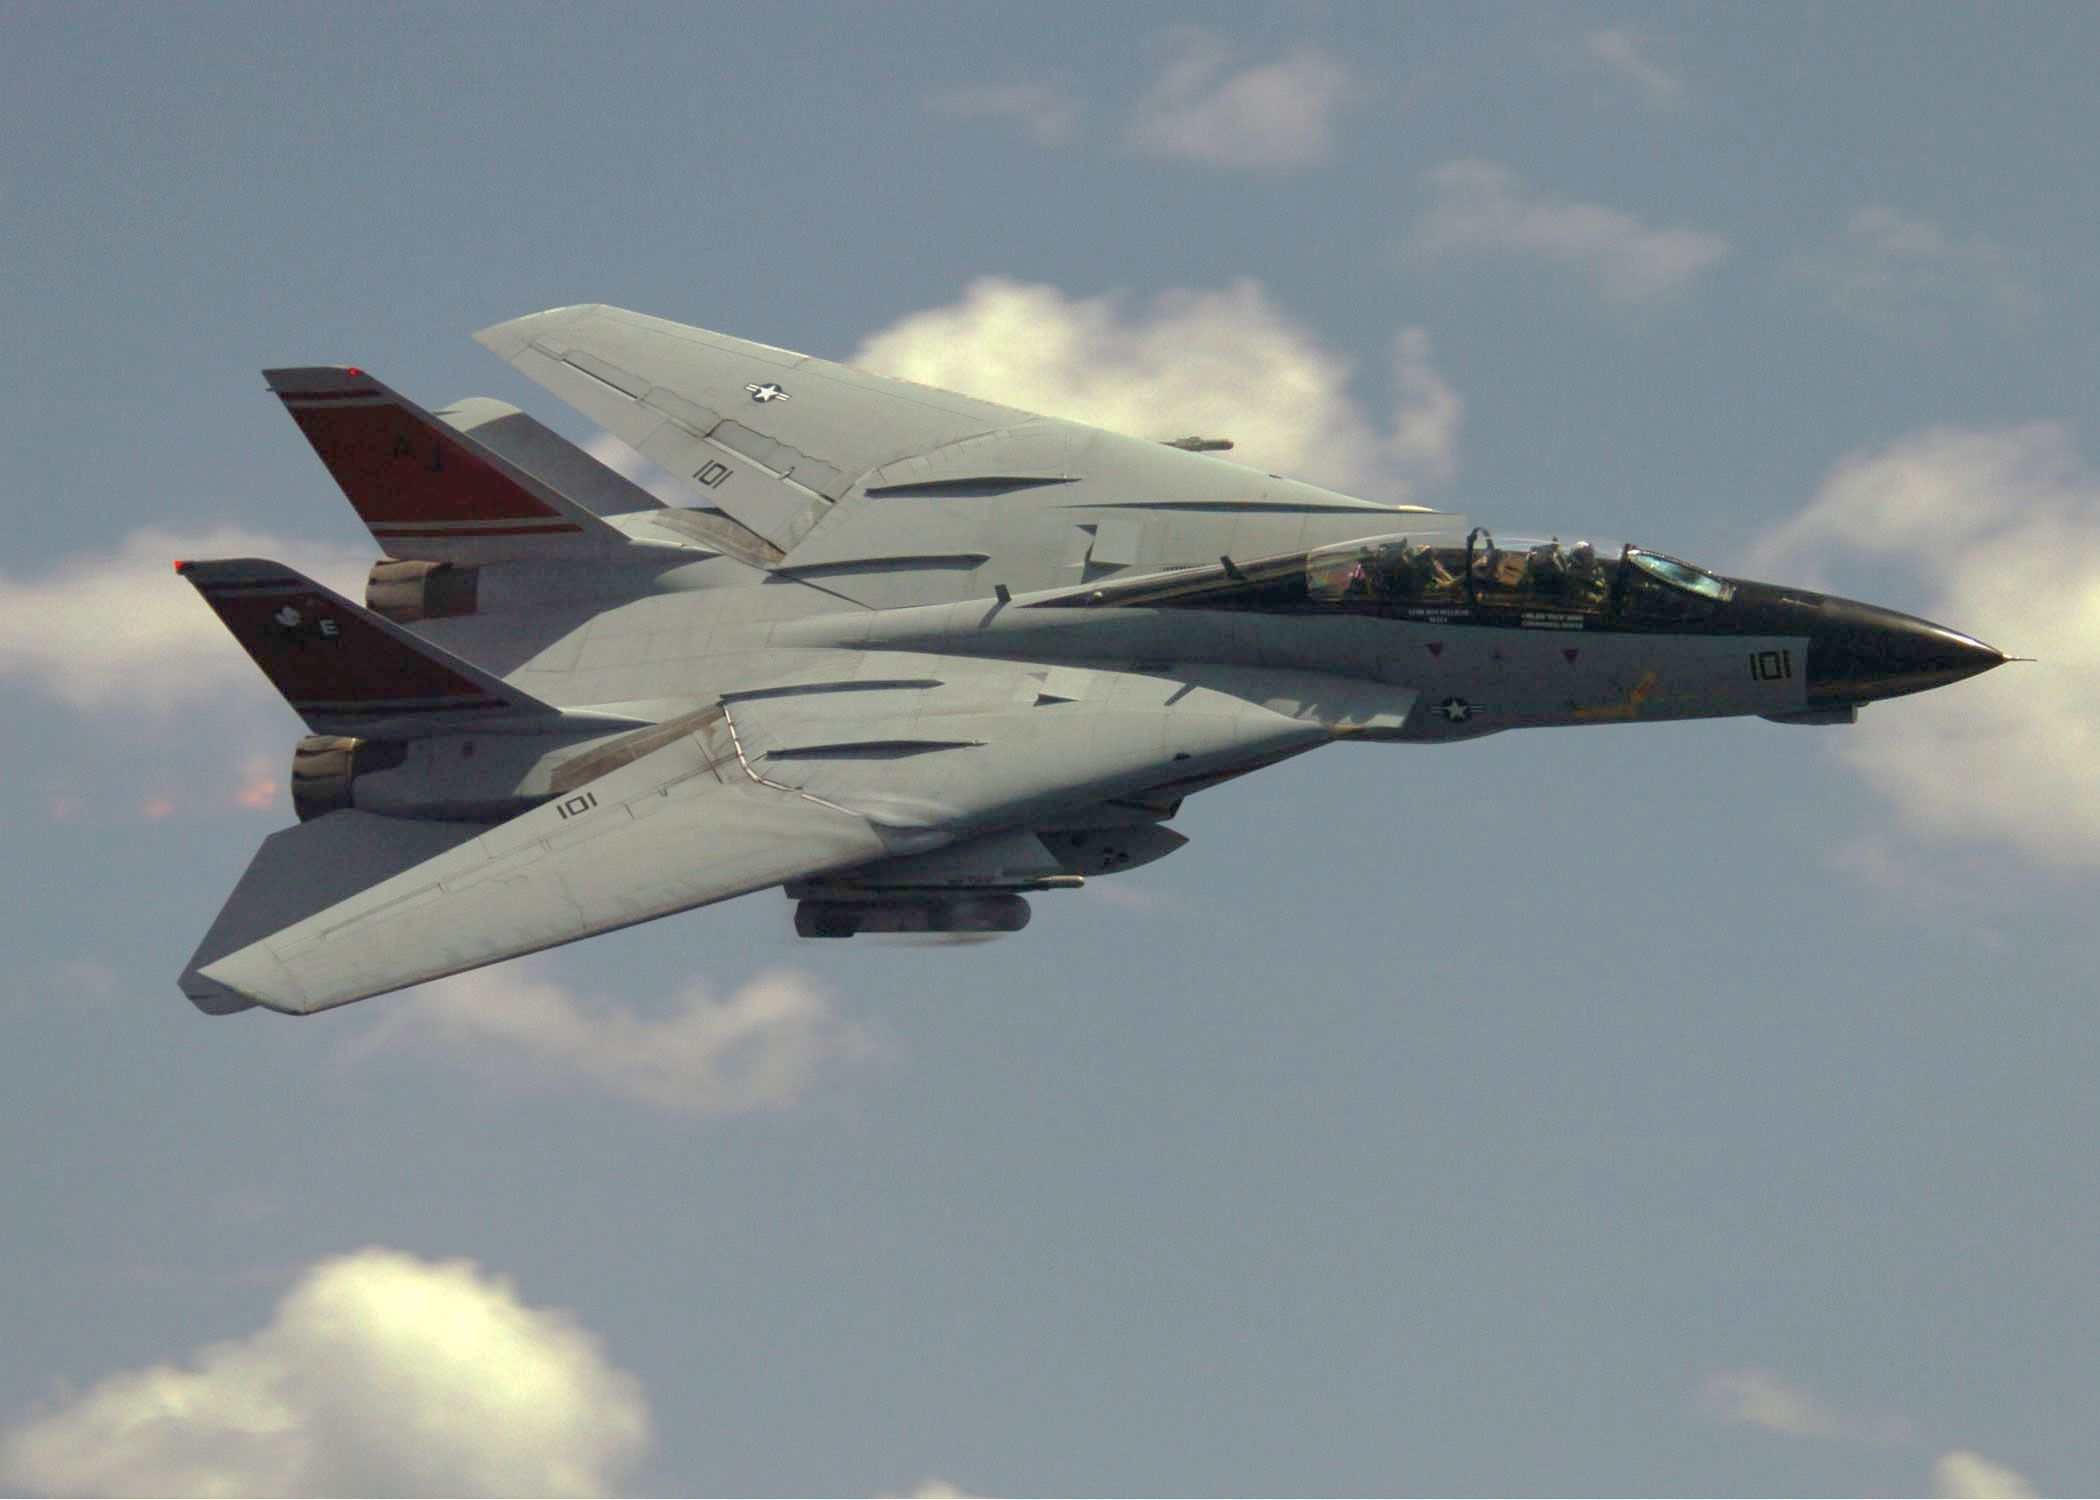 Grumman F-14 Tomcat. I think this will always be my favorite fighter jet. More